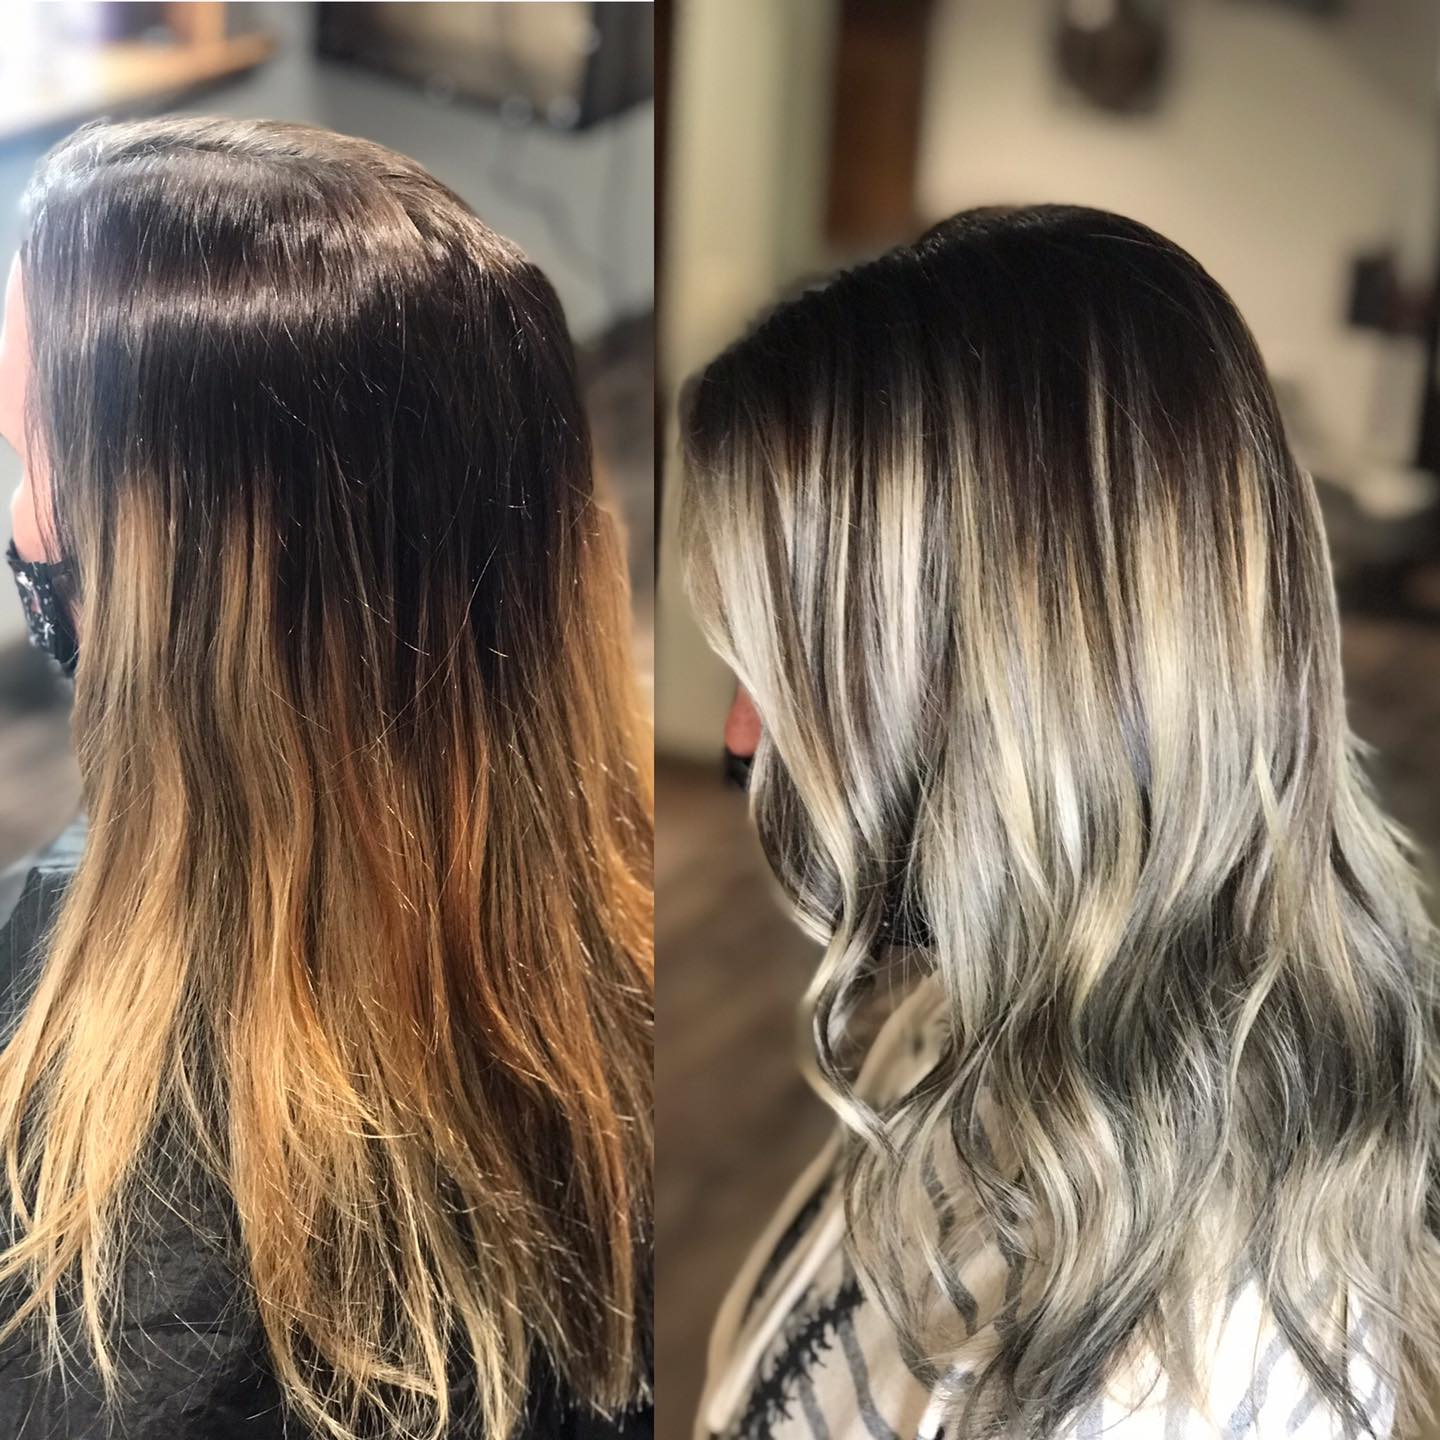 Get the Look You Want: Balayage vs. Foil